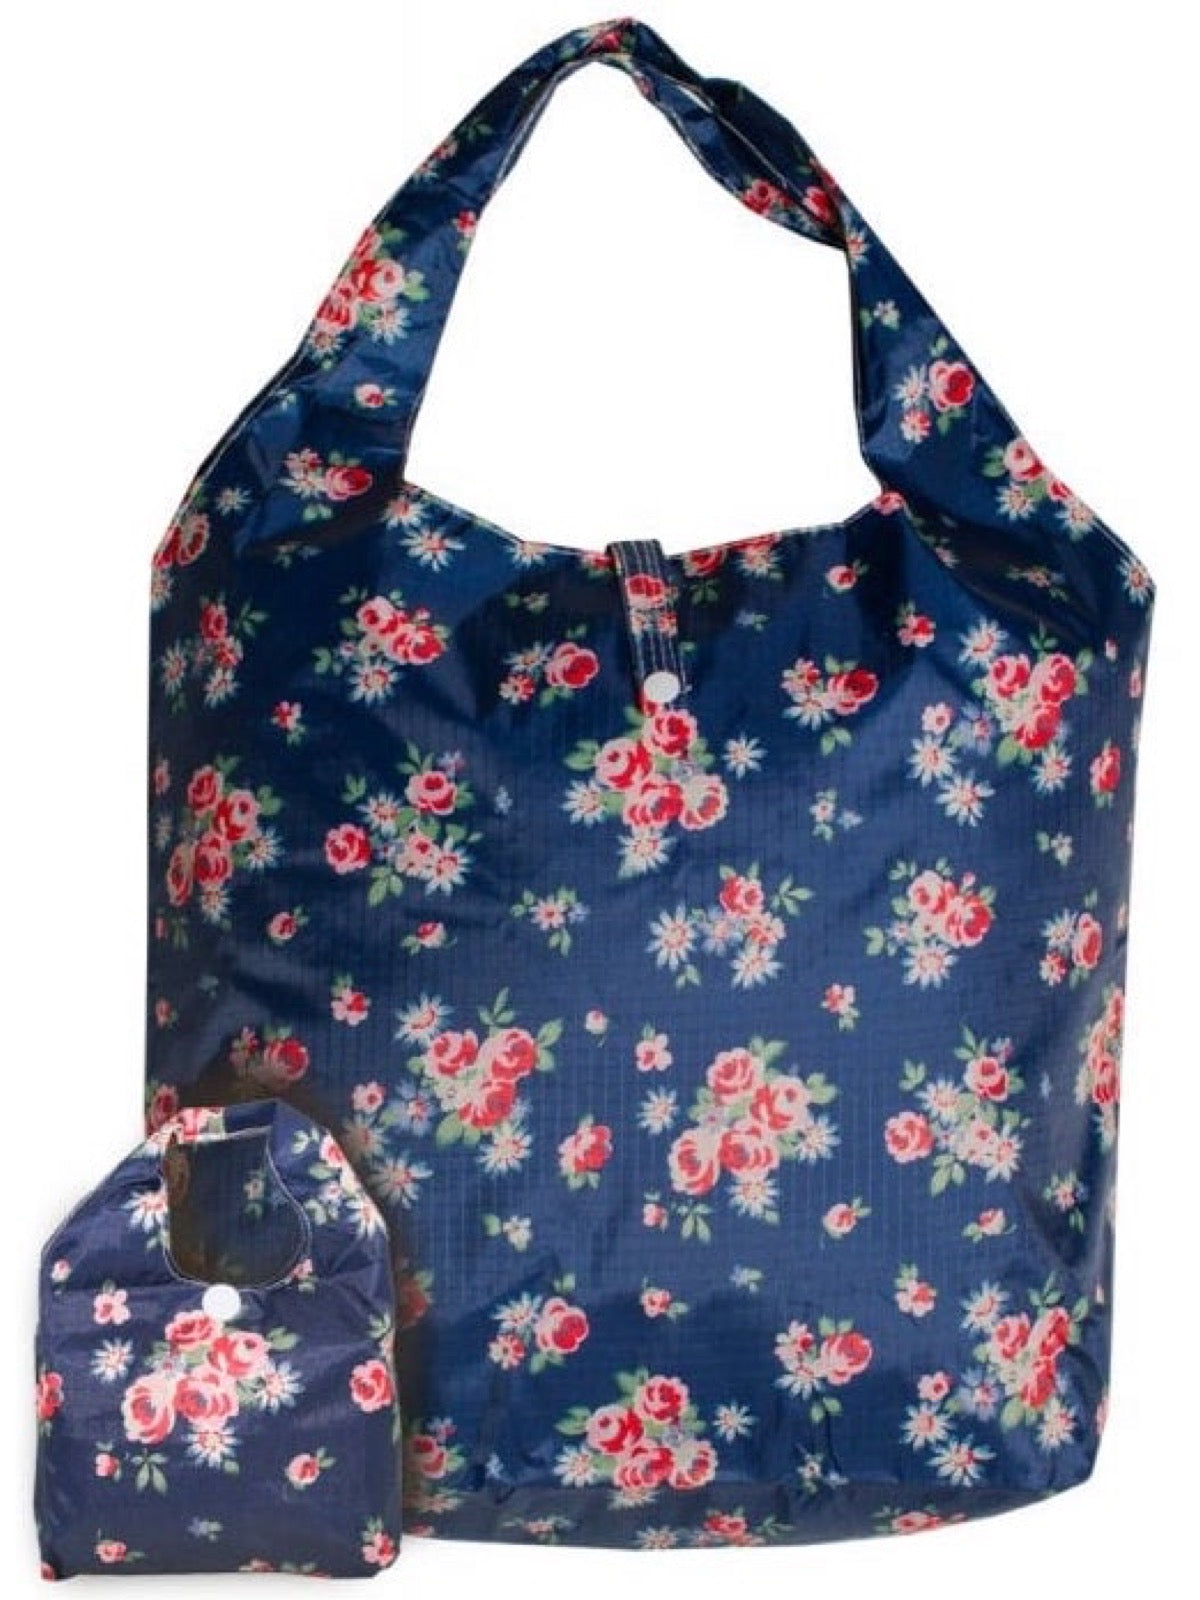 Shopping Bag - Navy Floral